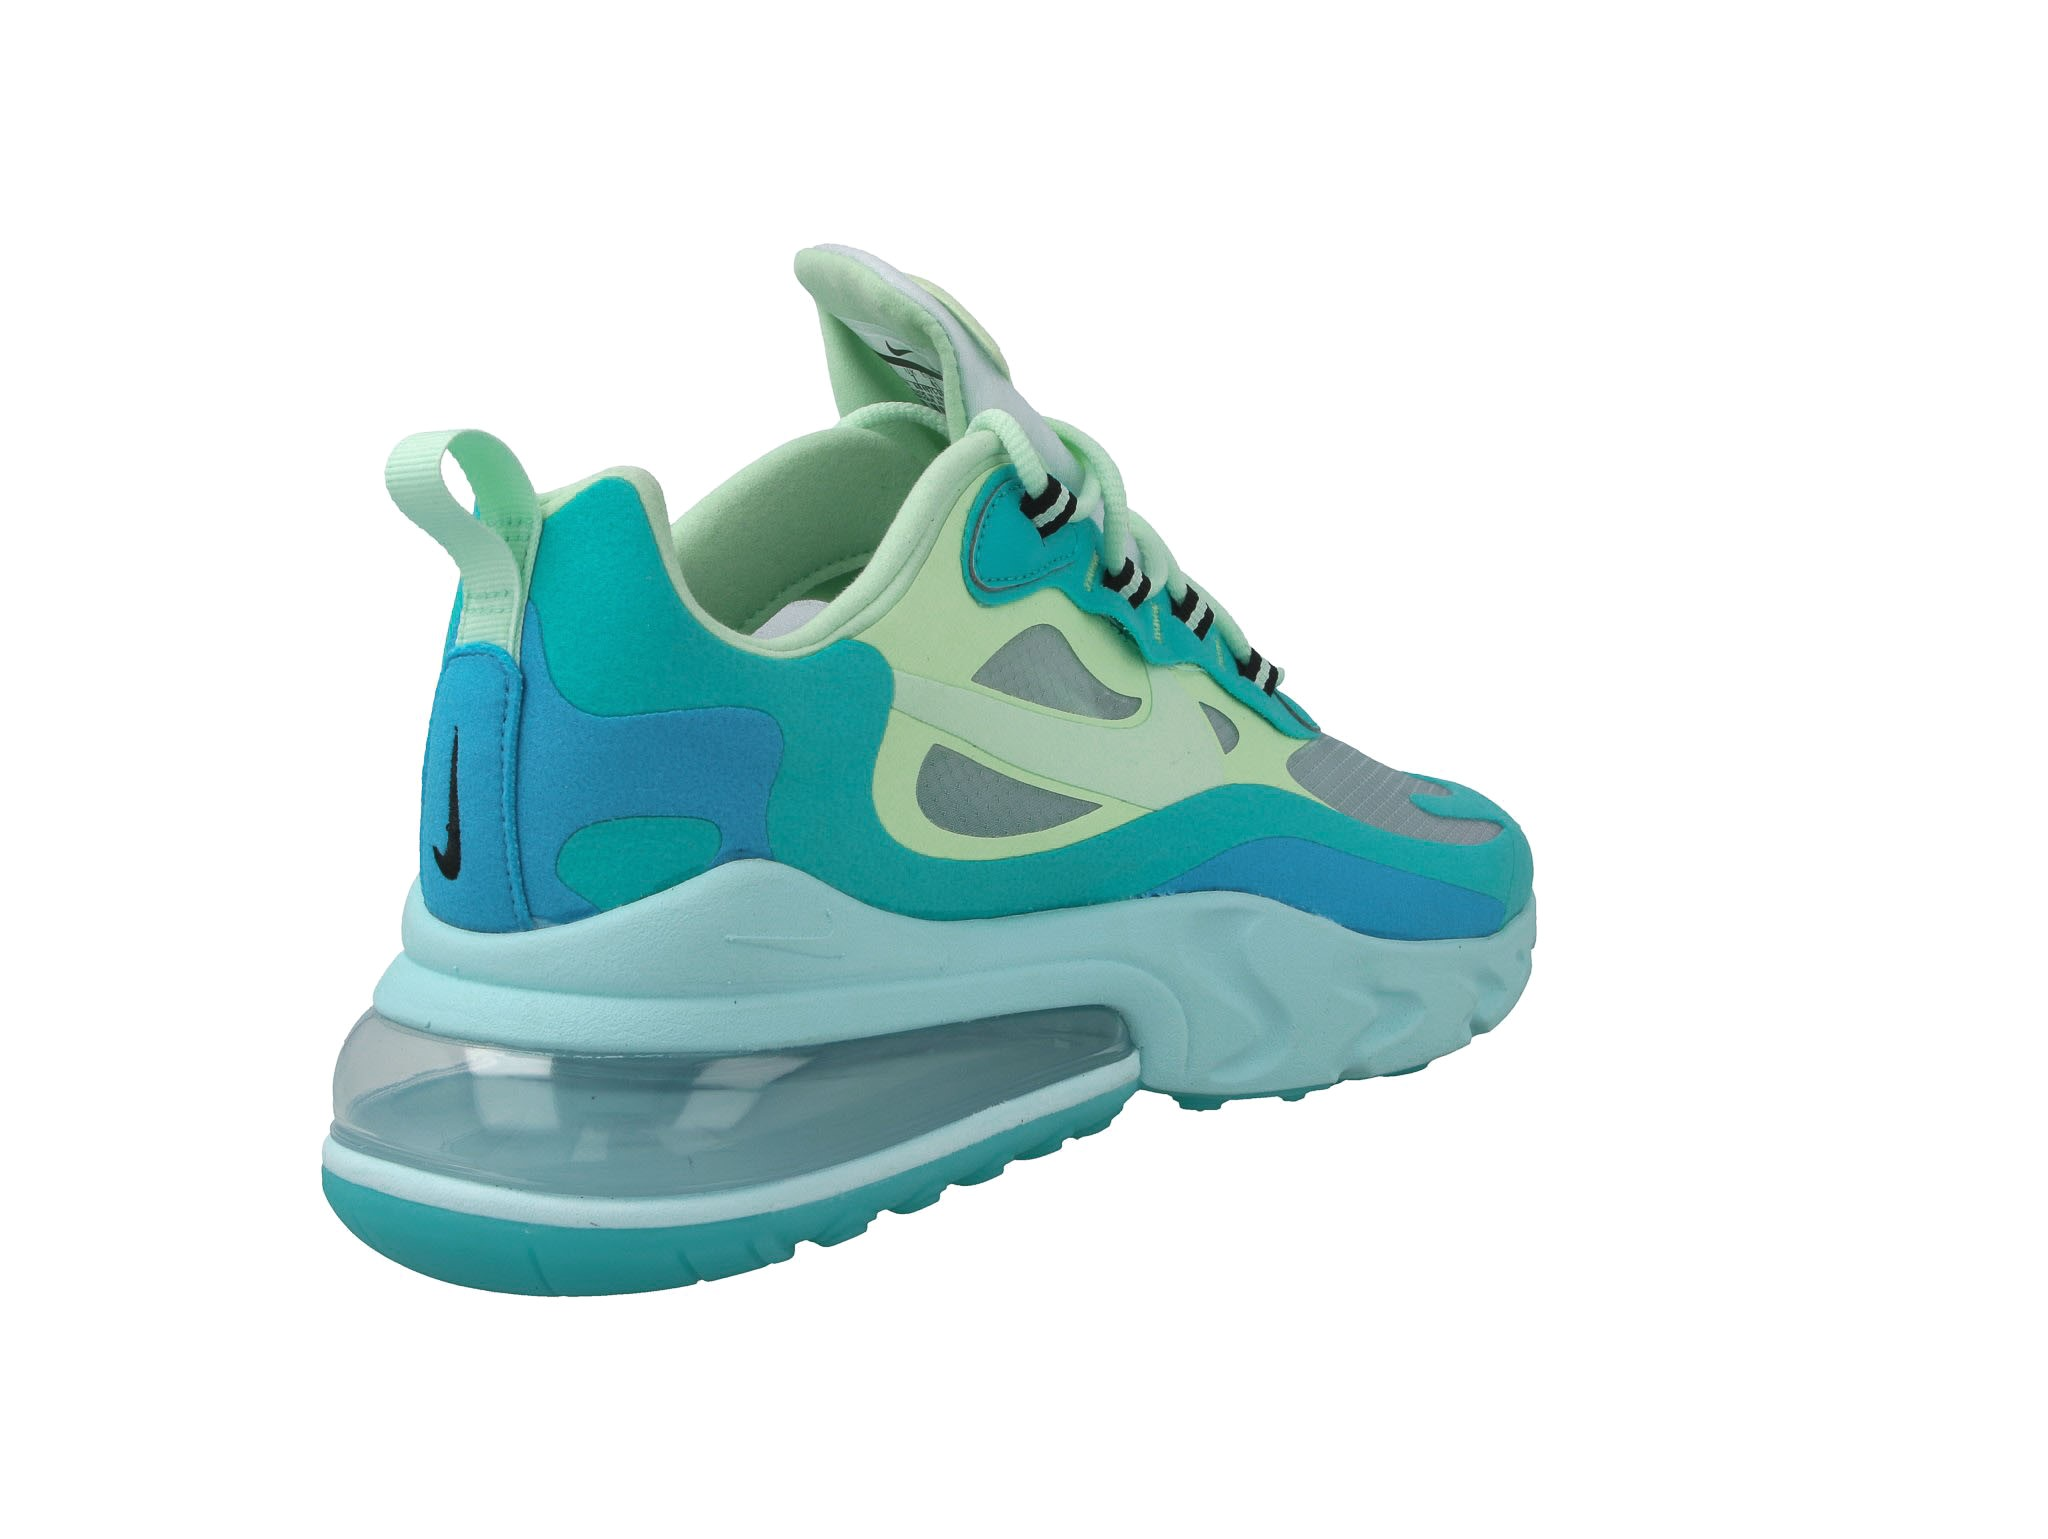 Nike Air Max 270 React Hyper Jade Frosted Spruce AO4971 301